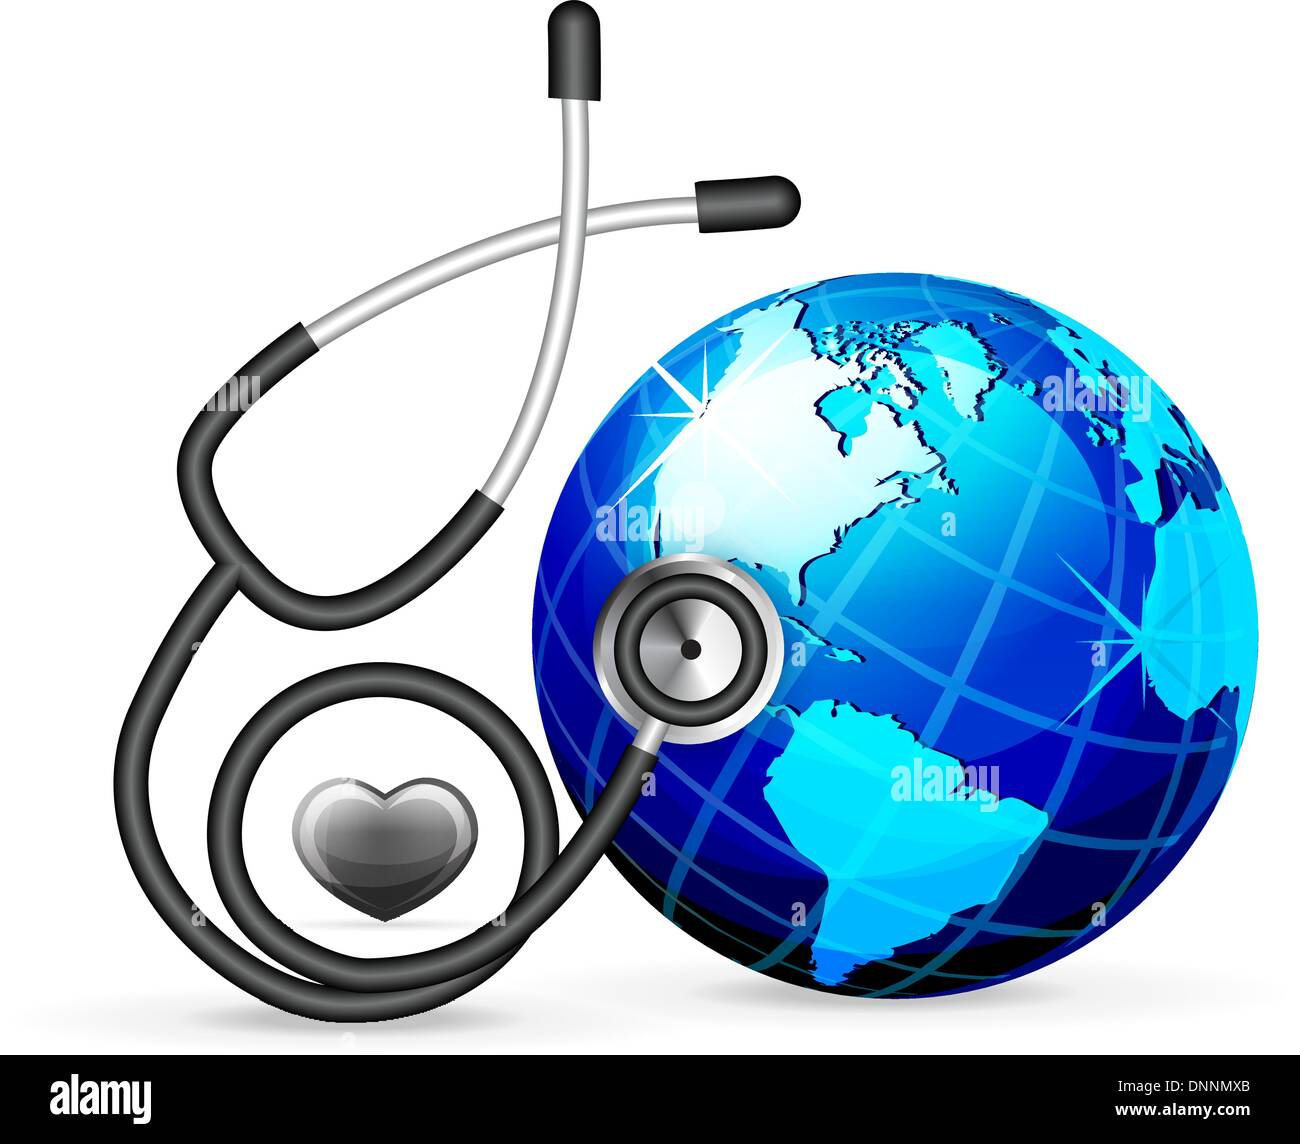 stethoscope and blue earth vector illustration isolated on white background - Stock Image